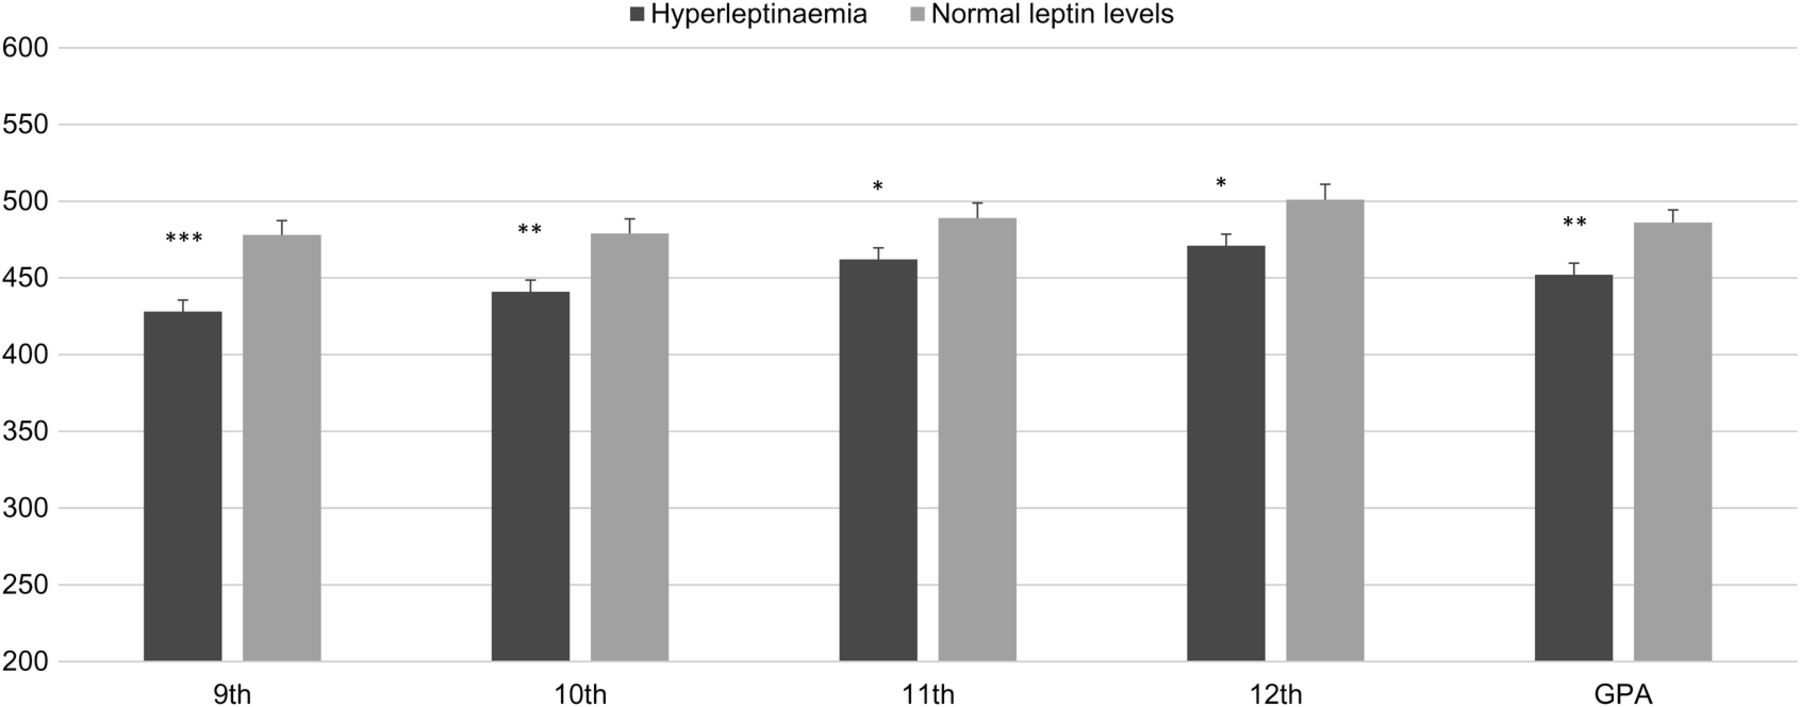 Leptin status in adolescence is associated with academic